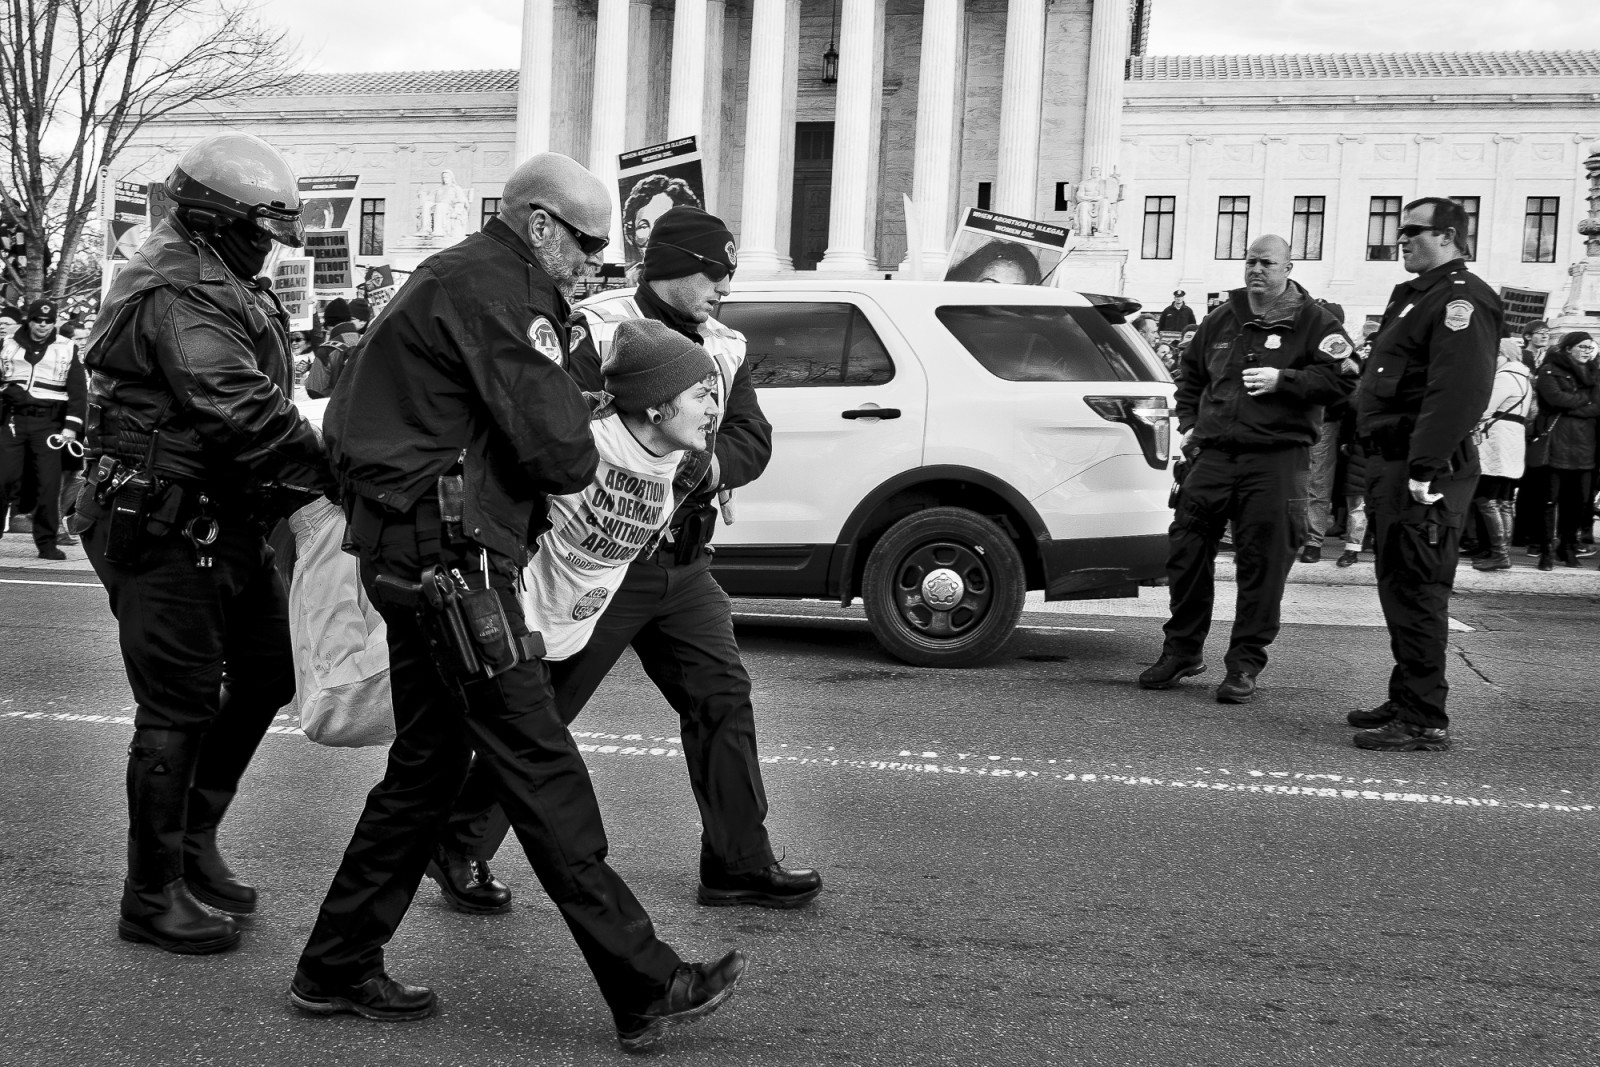 A pro-choice activist is arrested in front of the Supreme Court after her group blocked the street not allowing anti-abortion activists taking part in the 42nd March for Life in Washington, DC on January 22, 2015 to pass. Activists from across the nation participated in the annual pro-life rally protesting abortion and the 1973 Roe v. Wade Supreme Court decision legalizing abortion. UPI/Pete Marovich